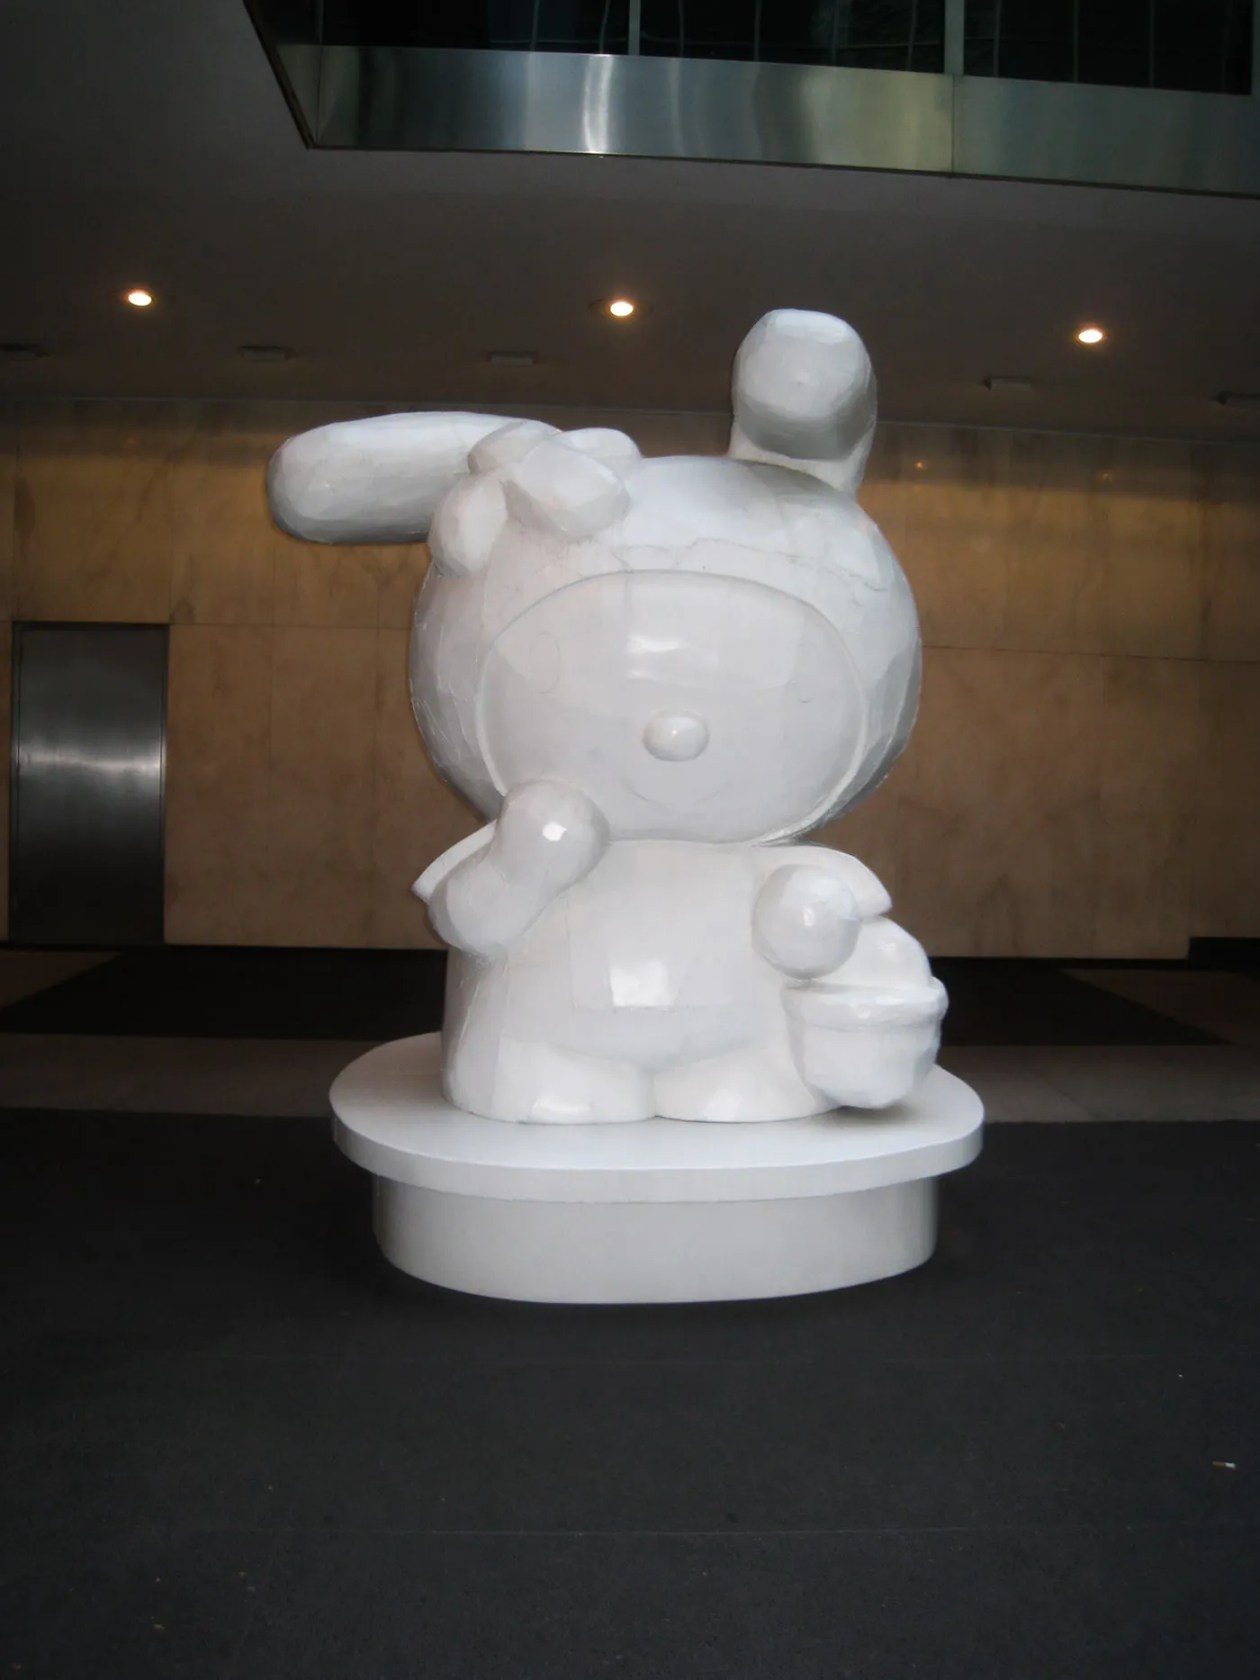 My Melody Hello Kitty Statues at the Lever House Art Collection in New York City.